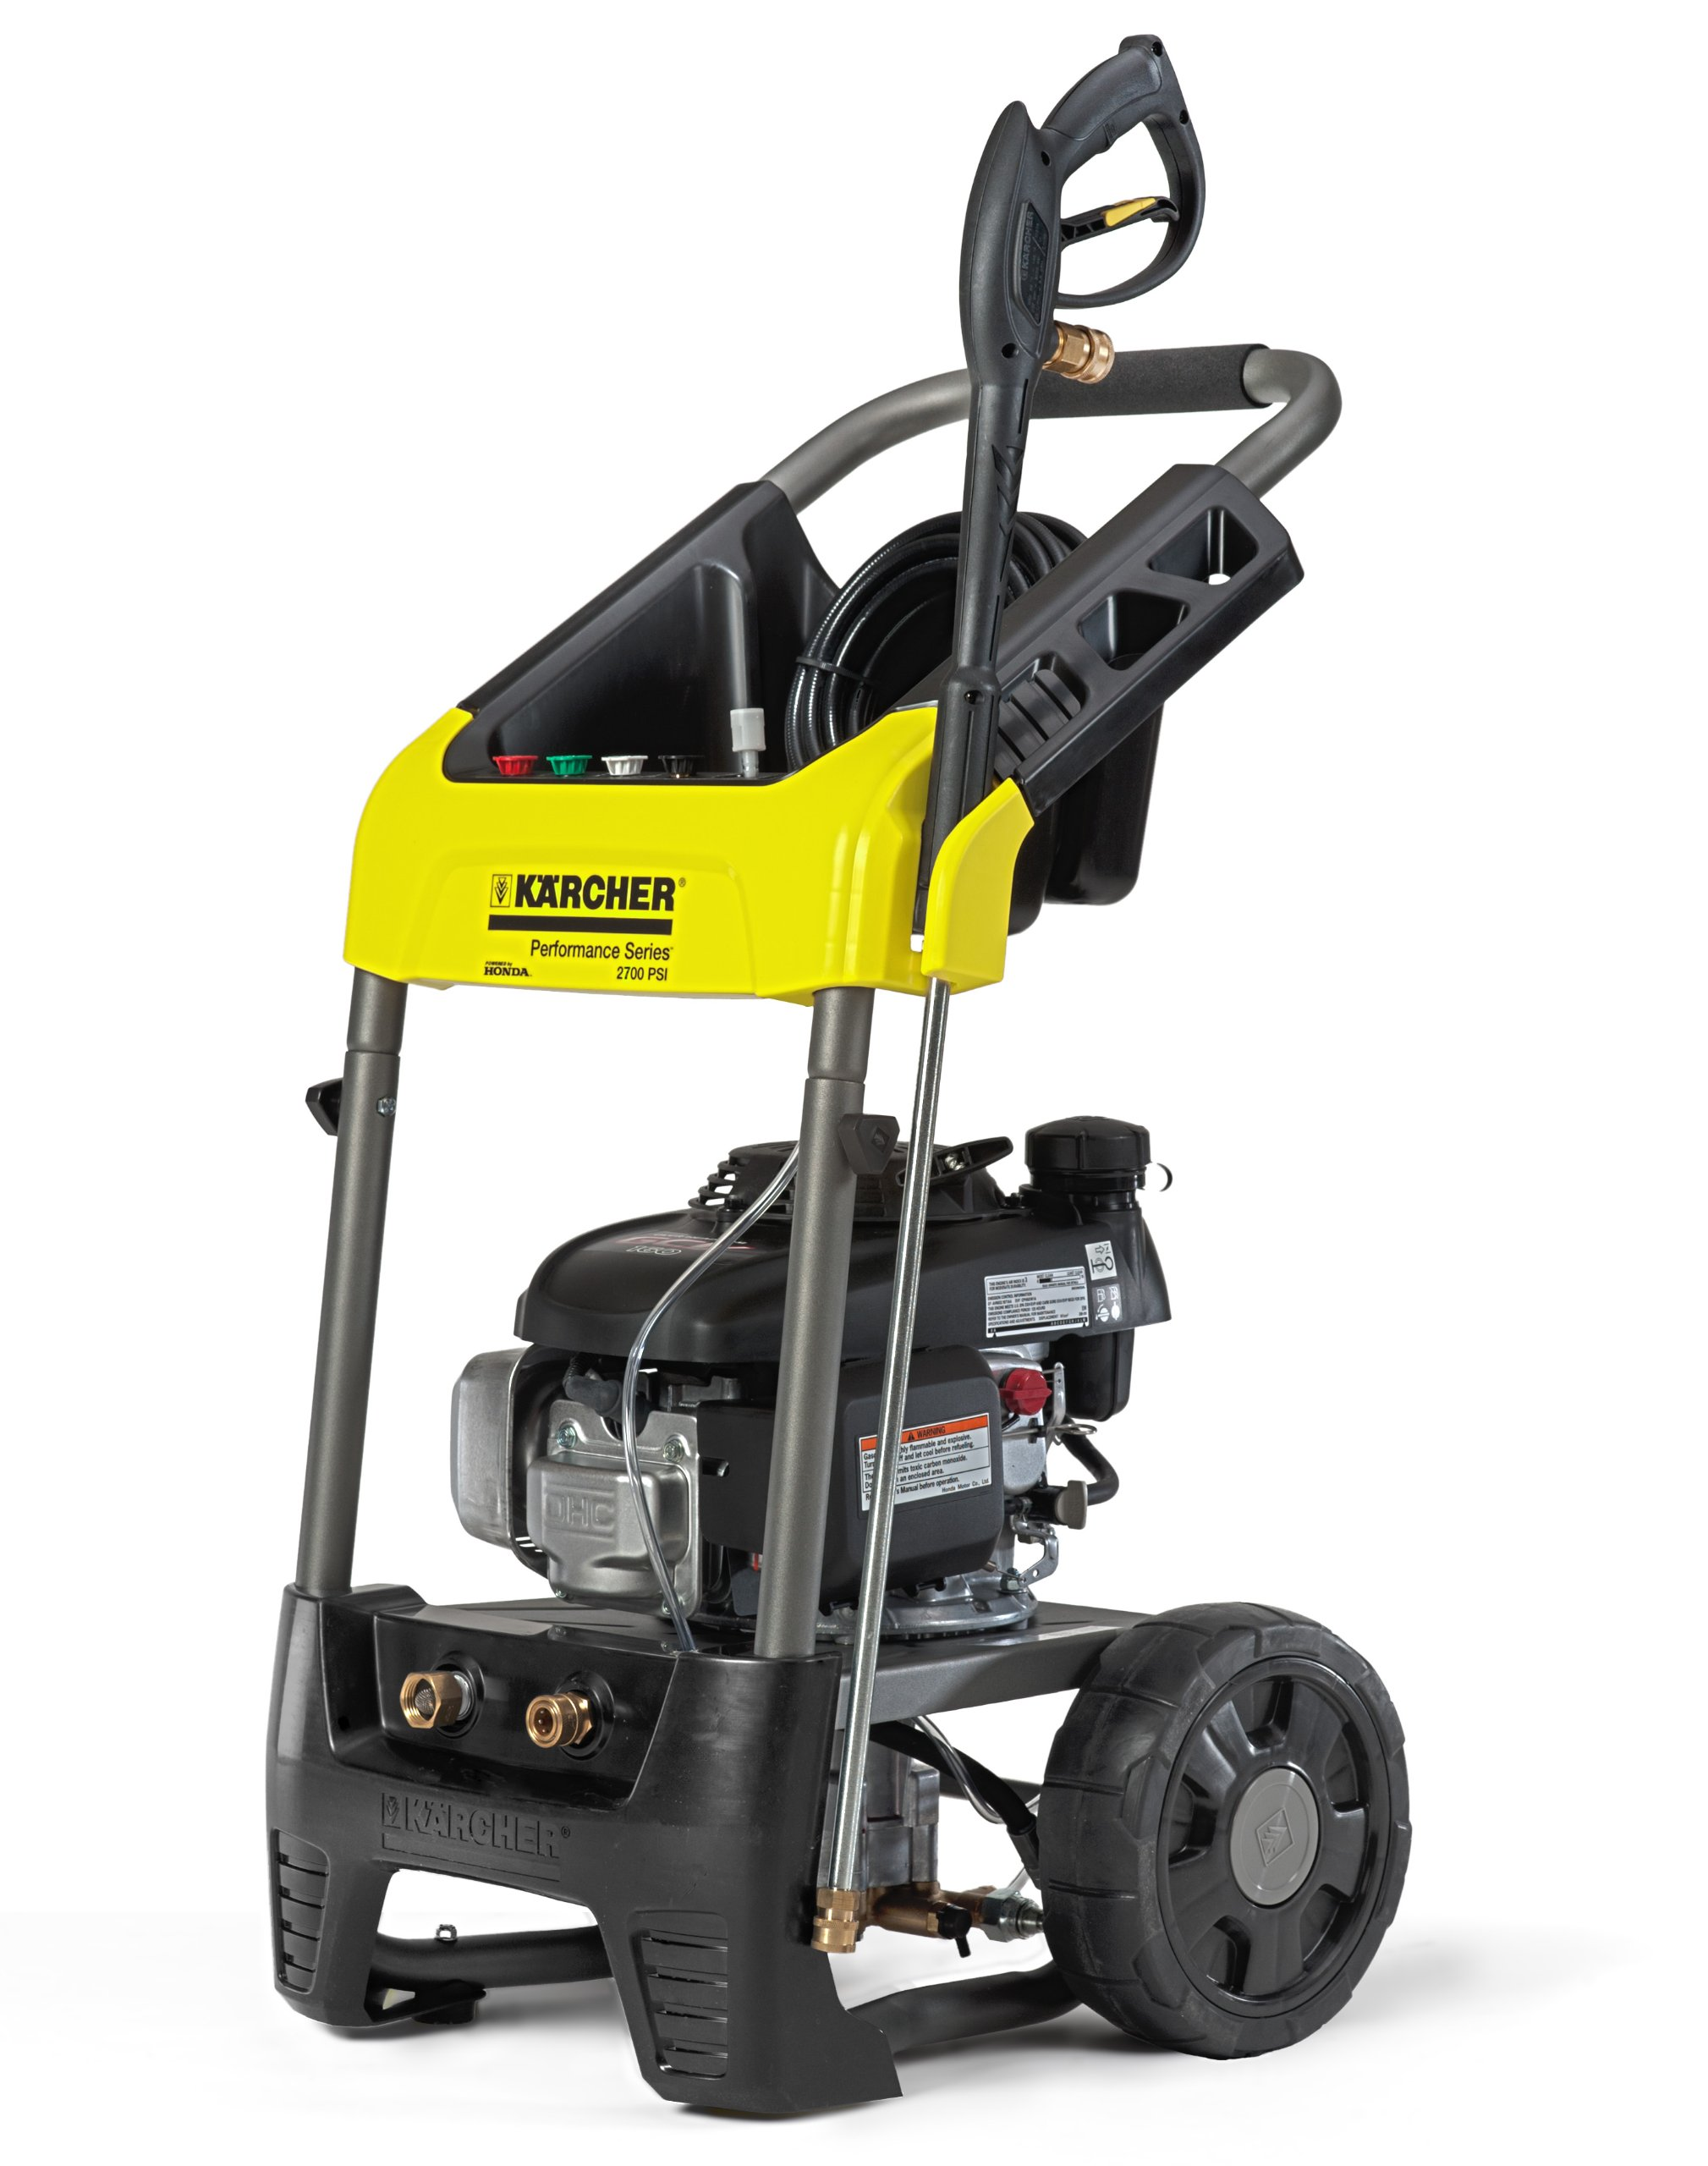 Honda pressure washer amazon karcher performance series 2700psi gas pressure washer with honda engine g2700dh fandeluxe Images